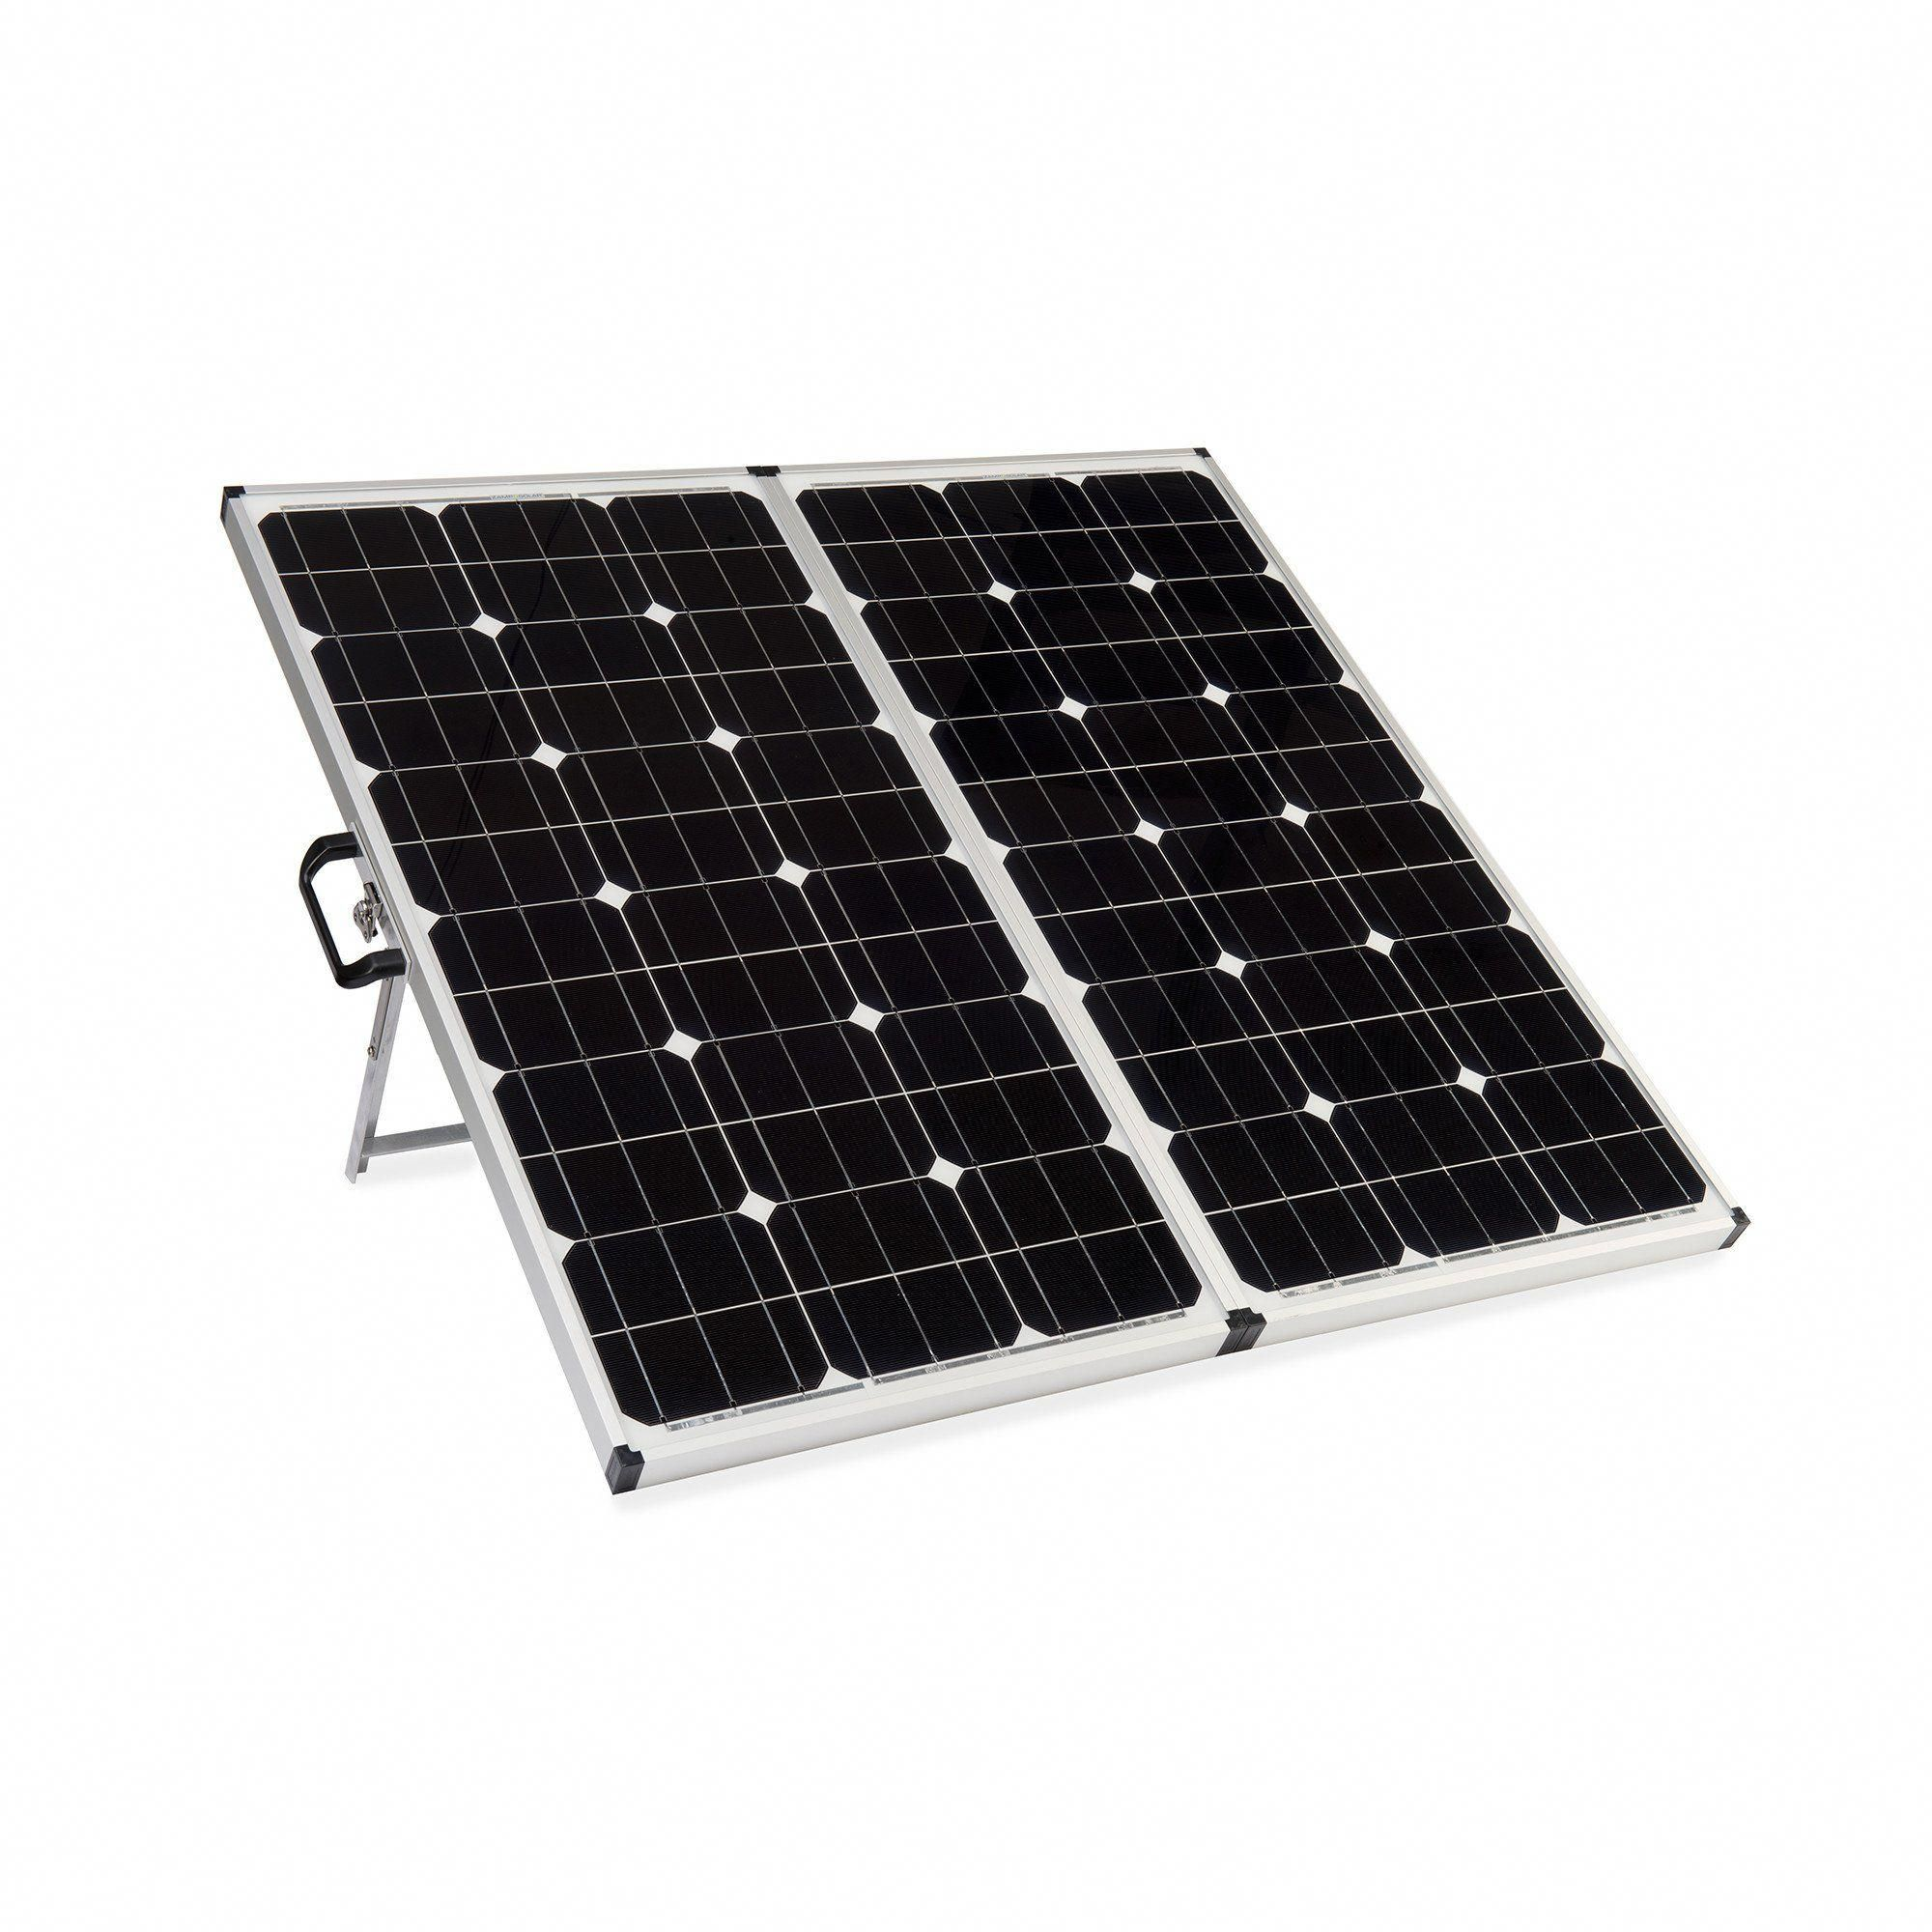 Please Allow 2 4 Weeks For Shipment The Most Popular Large Sized Universal Portable Solar Kit Wil In 2020 With Images Solar Panels Solar Energy Panels Solar Technology